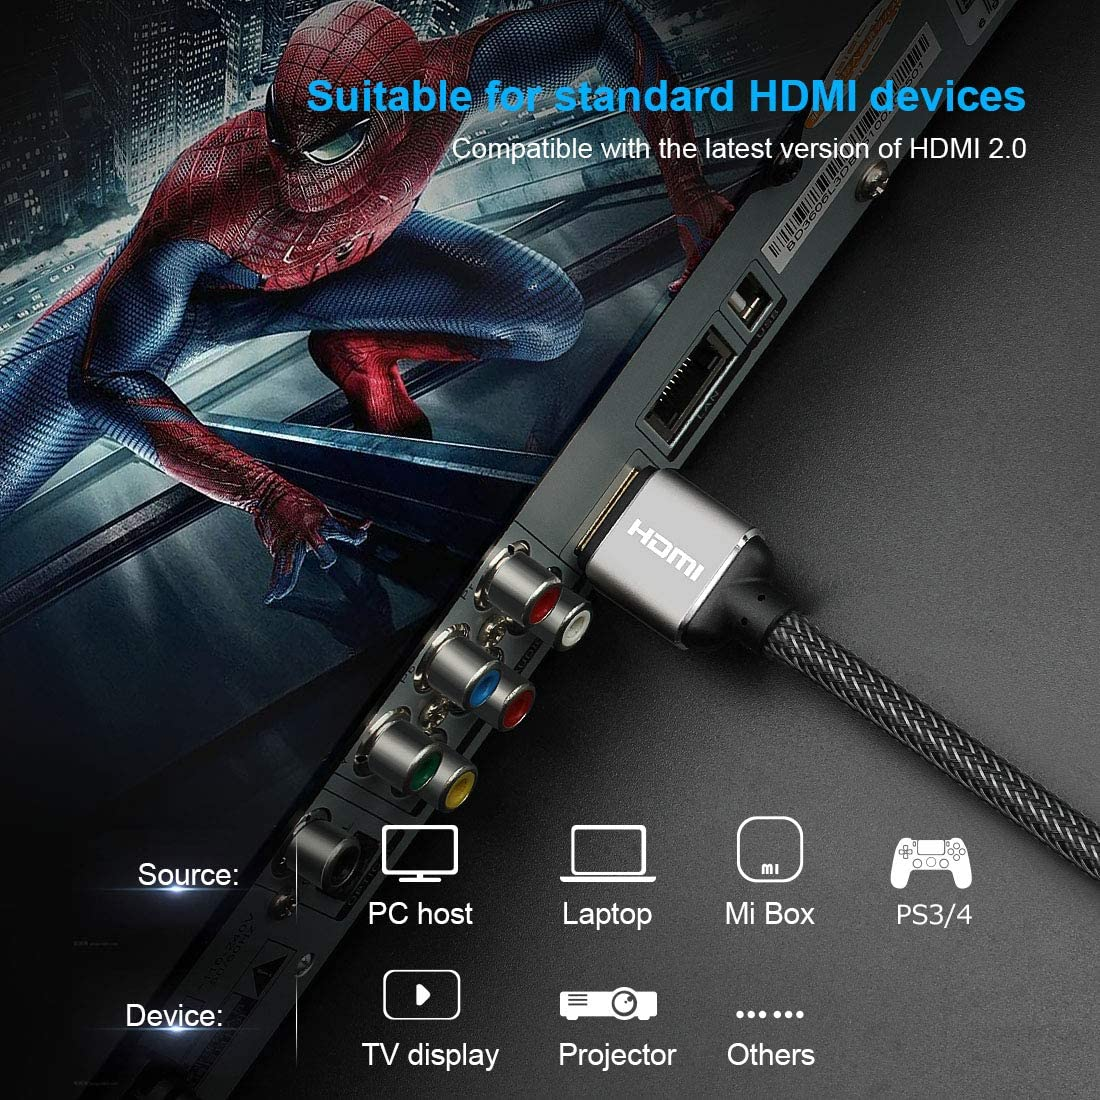 High Speed 4K HDMI Cable 10 ft//3m 18Gbps HDMI 2.0 Cable with Braided CordSupports 4K 60Hz HDR,Video 4K 2160p 1080p 3D,Compatible with Ethernett ARC PS4//3 HDTV Xbox